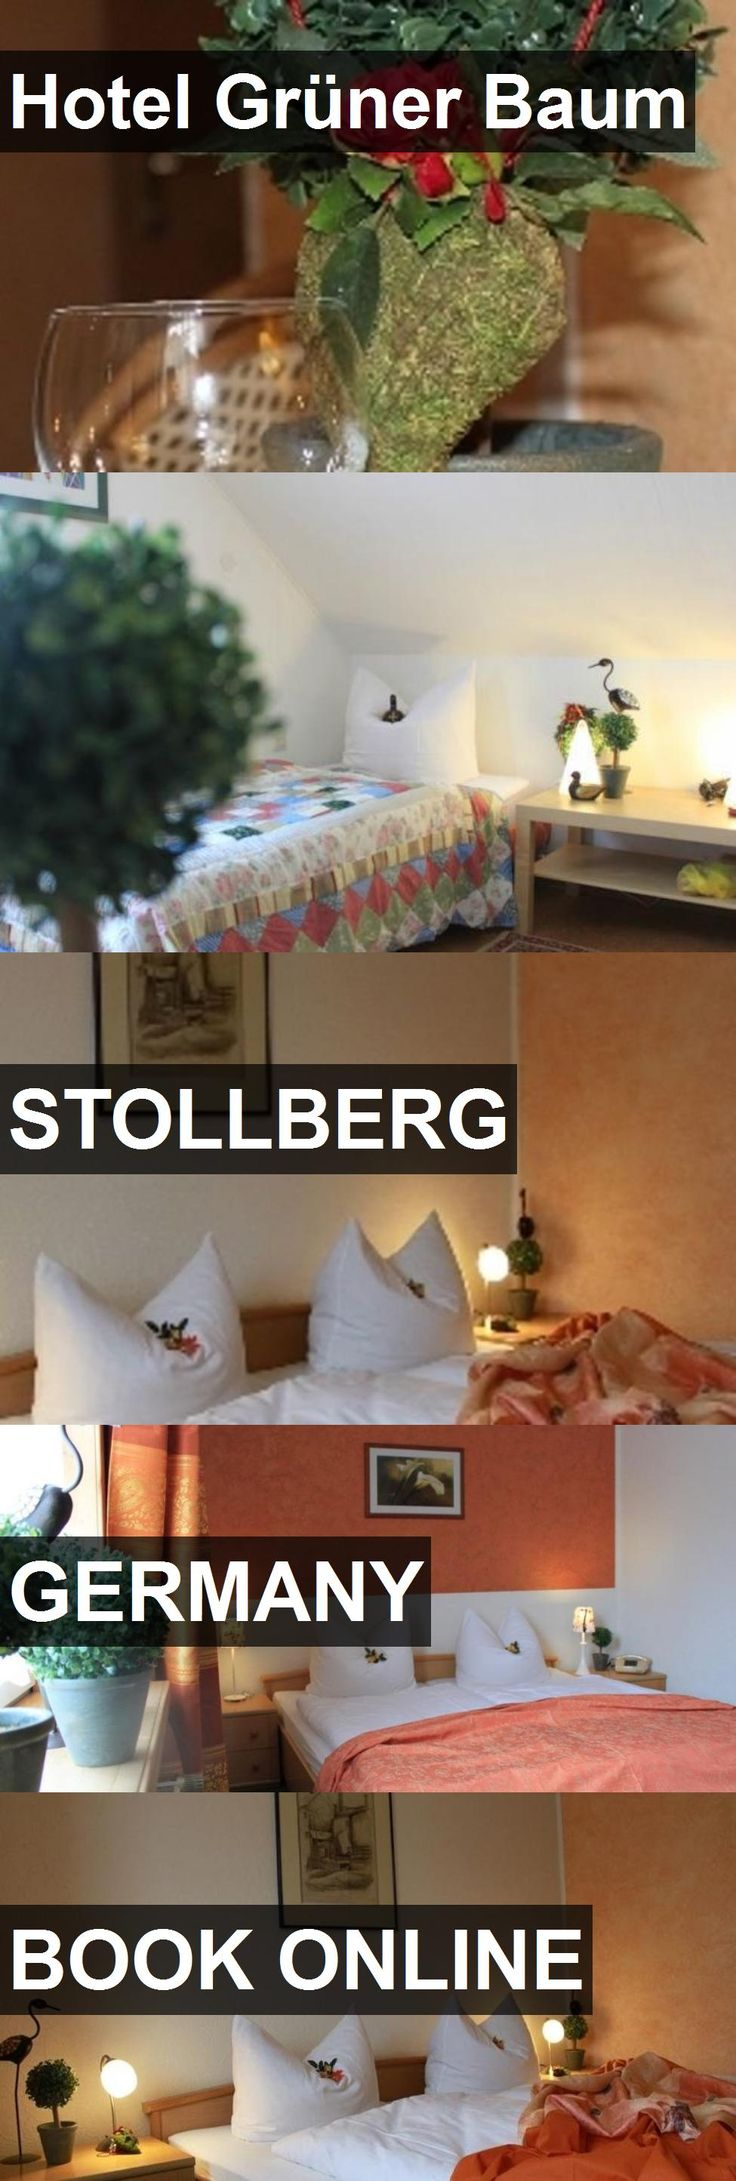 Hotel Hotel Grüner Baum in Stollberg, Germany. For more information, photos, reviews and best prices please follow the link. #Germany #Stollberg #HotelGrünerBaum #hotel #travel #vacation